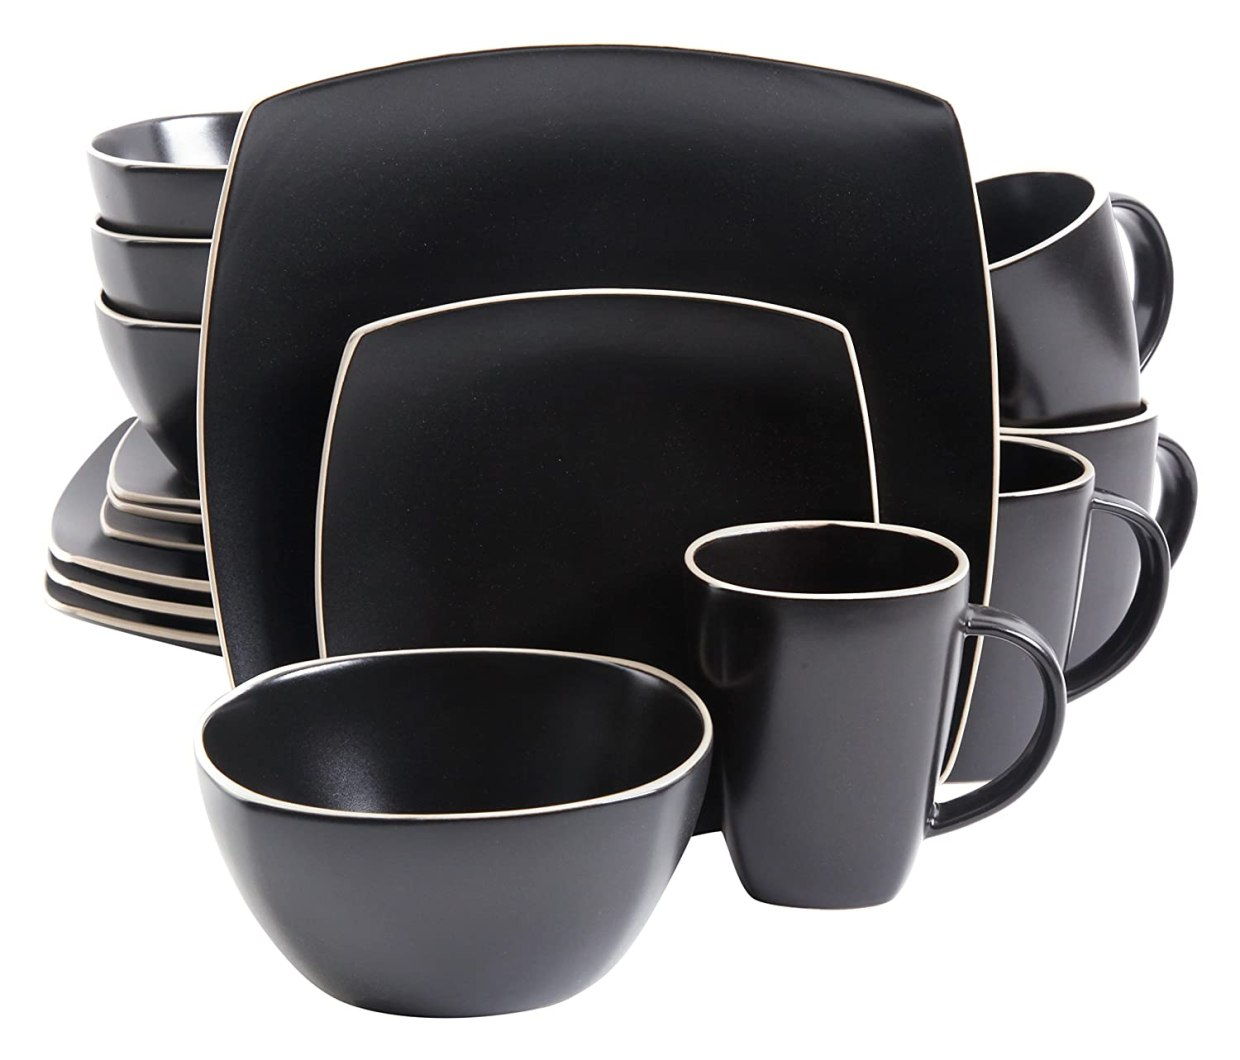 Set de platos color negro para la cocinahttps://amzn.to/2ryNuvE